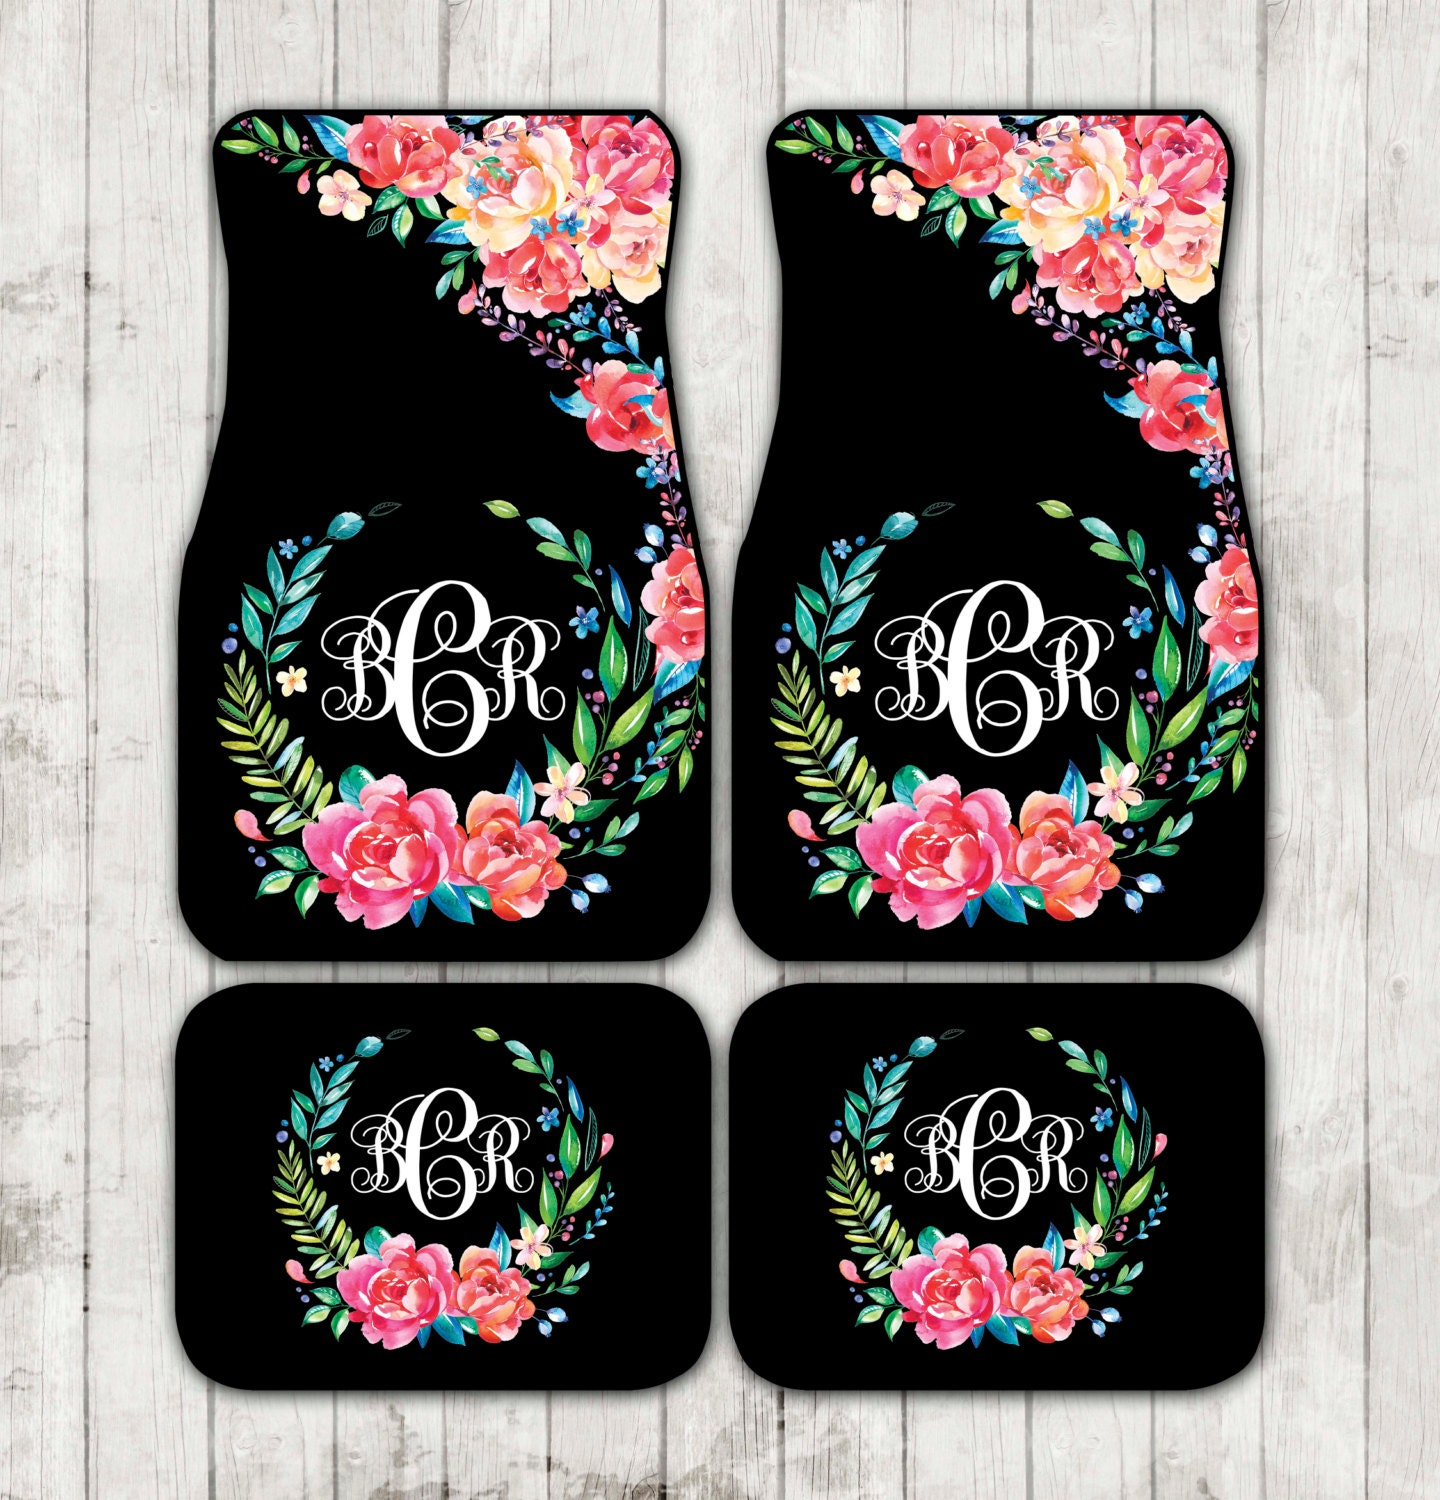 Floor mats dream cars - Floral Monogrammed Car Mats Classy Black Monogram Carmats Car Floor Mats Custom Car Accessories For Her Car Decor Cute Car Accessories